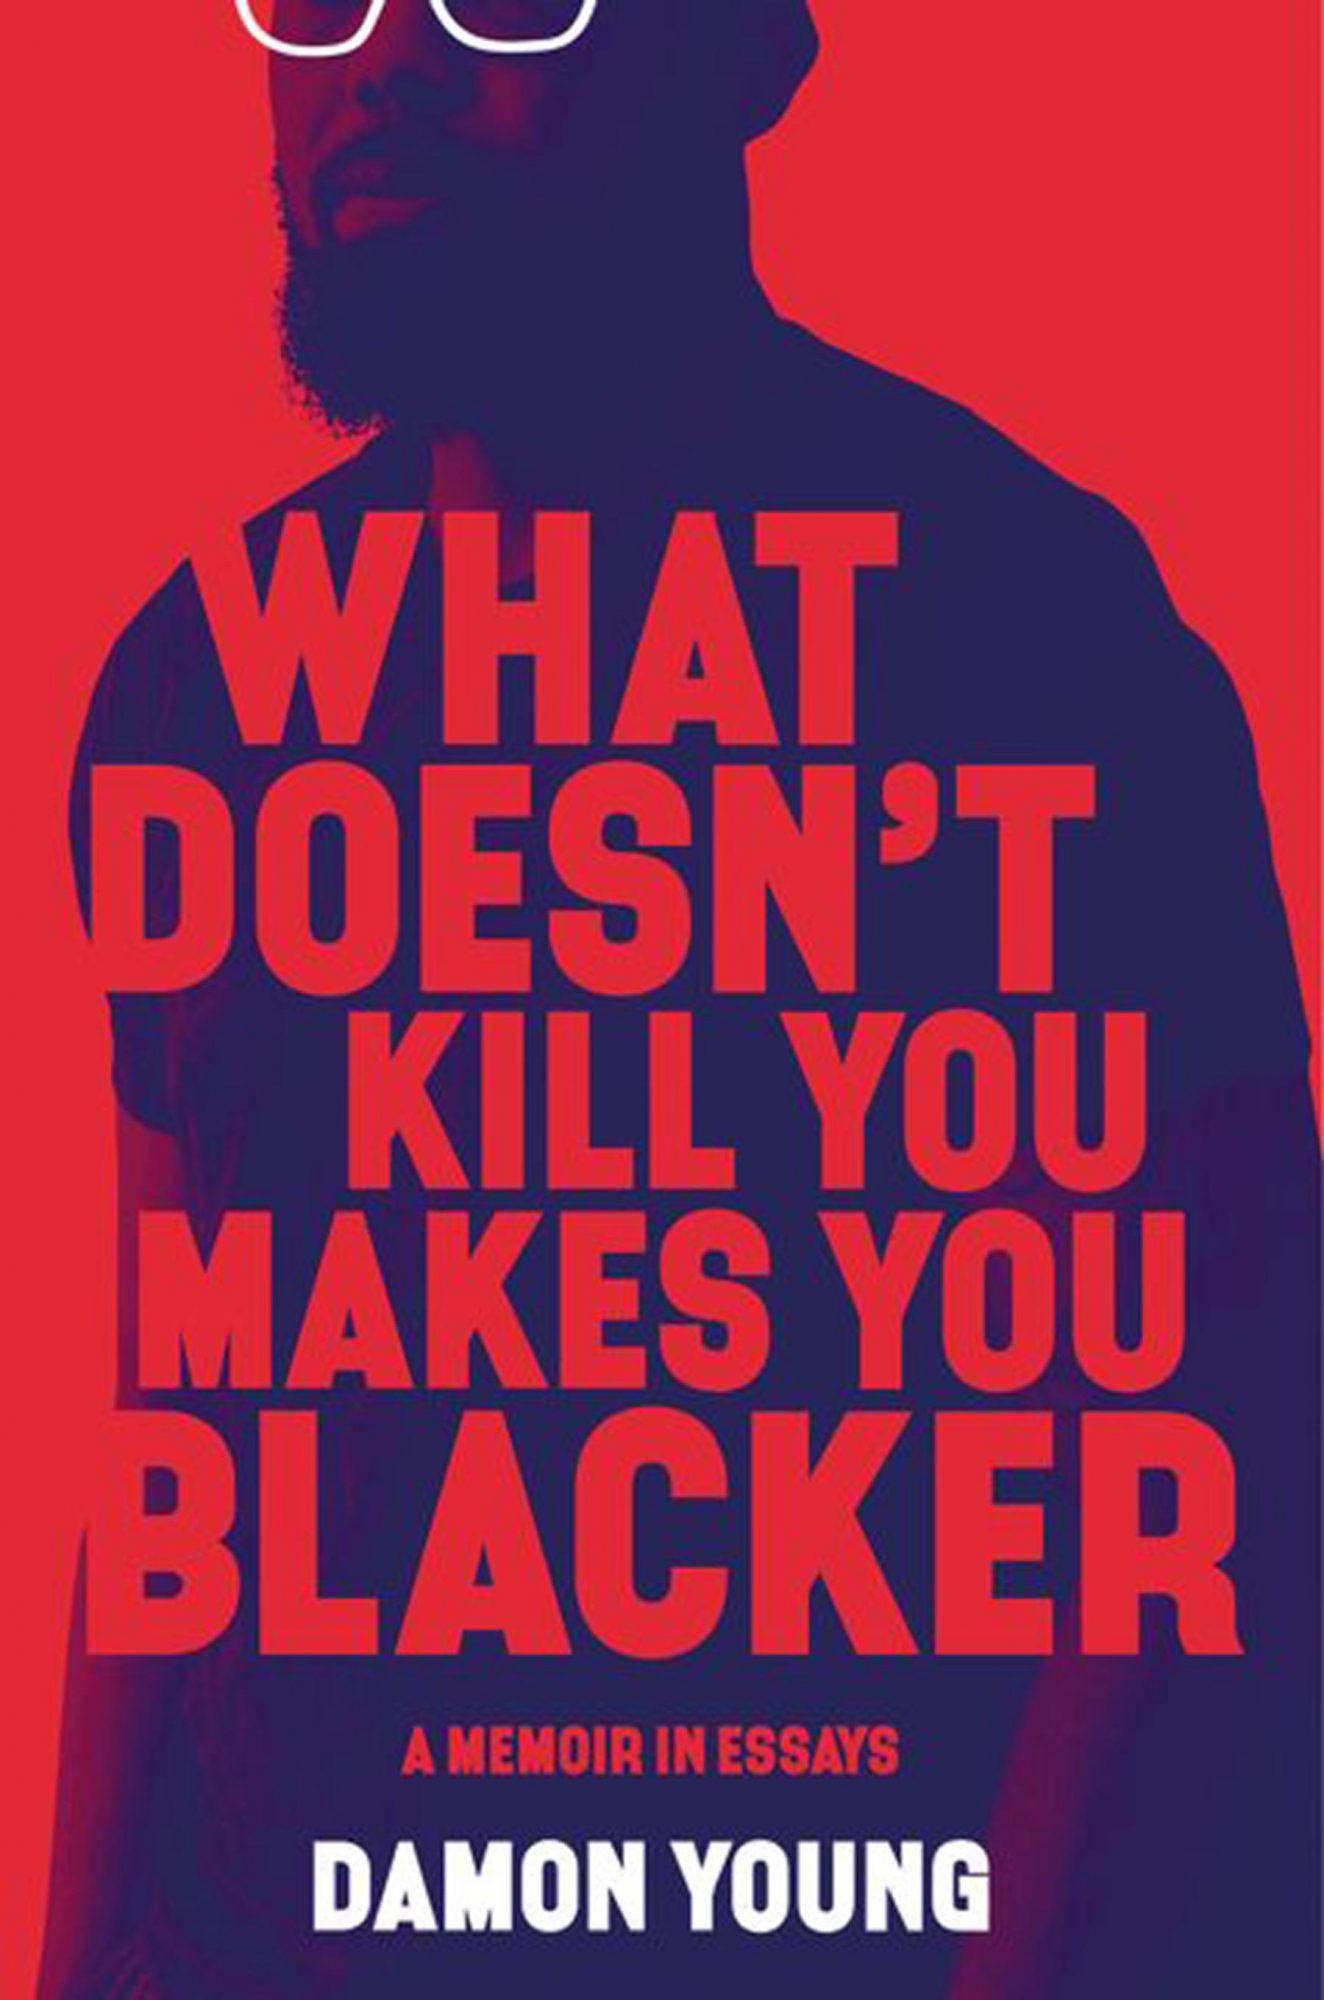 What Doesn't Kill You Makes You Blacker by Damon YoungPublisher: Ecco